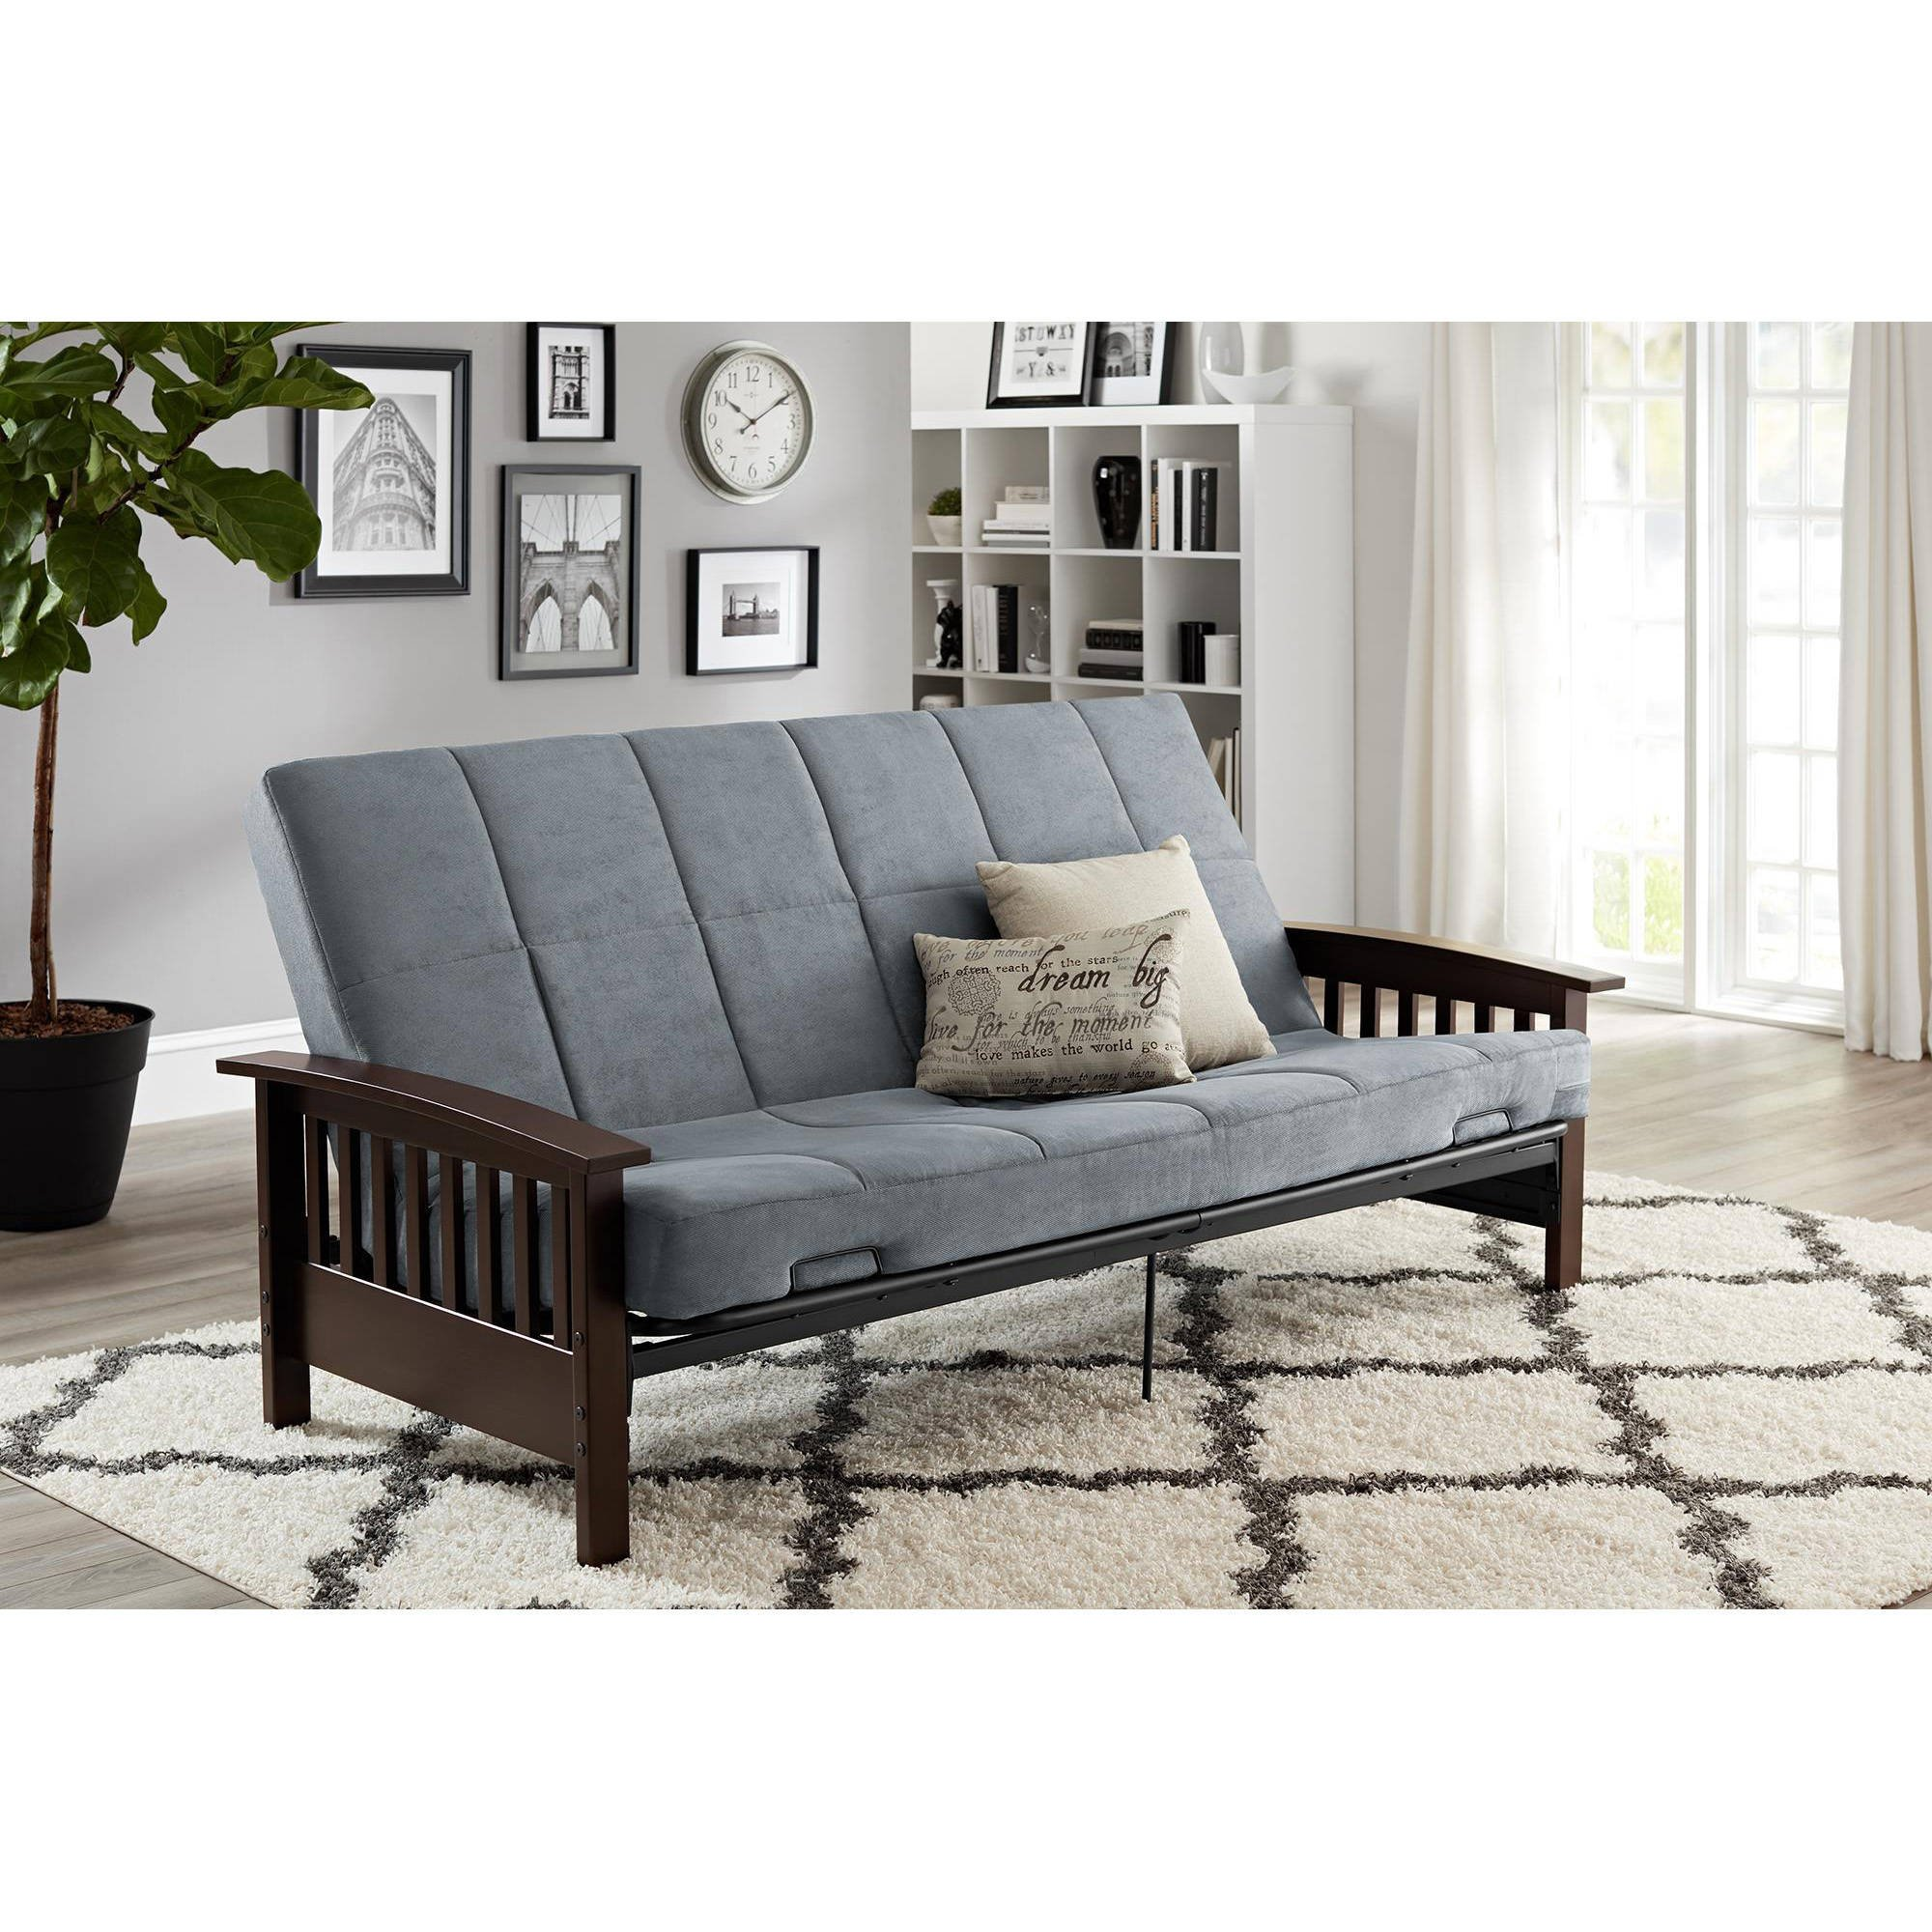 Better Homes & Gardens' Solid Mission Wood Arm Futon in Gray by Better Homes & Gardens'